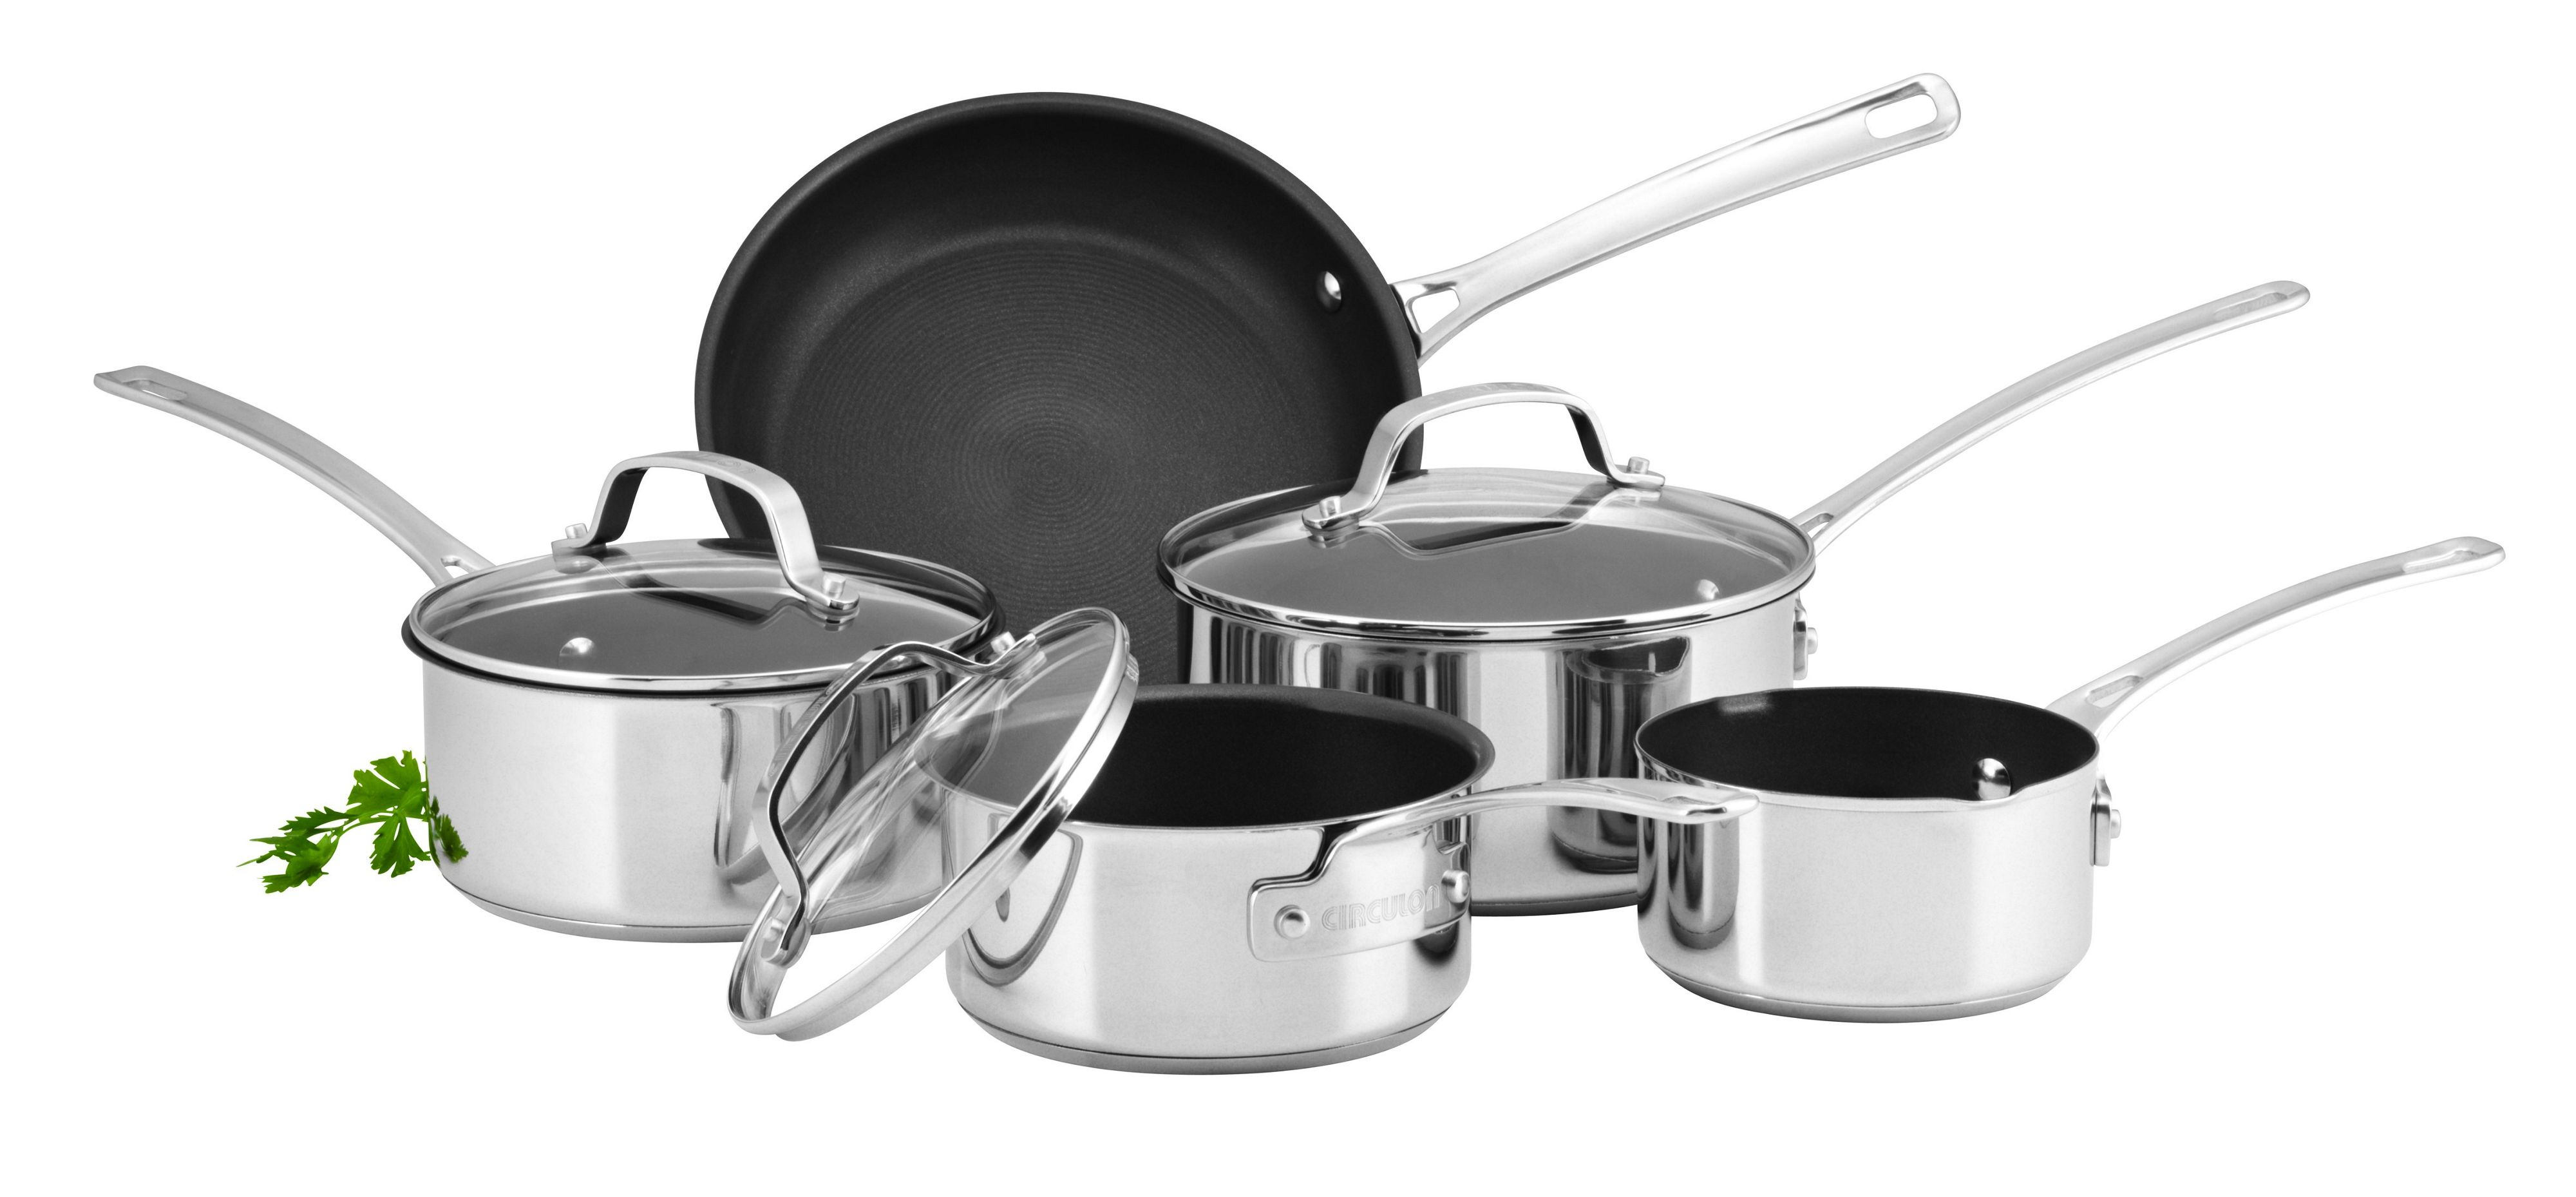 Circulon Genesis 5 piece pan set